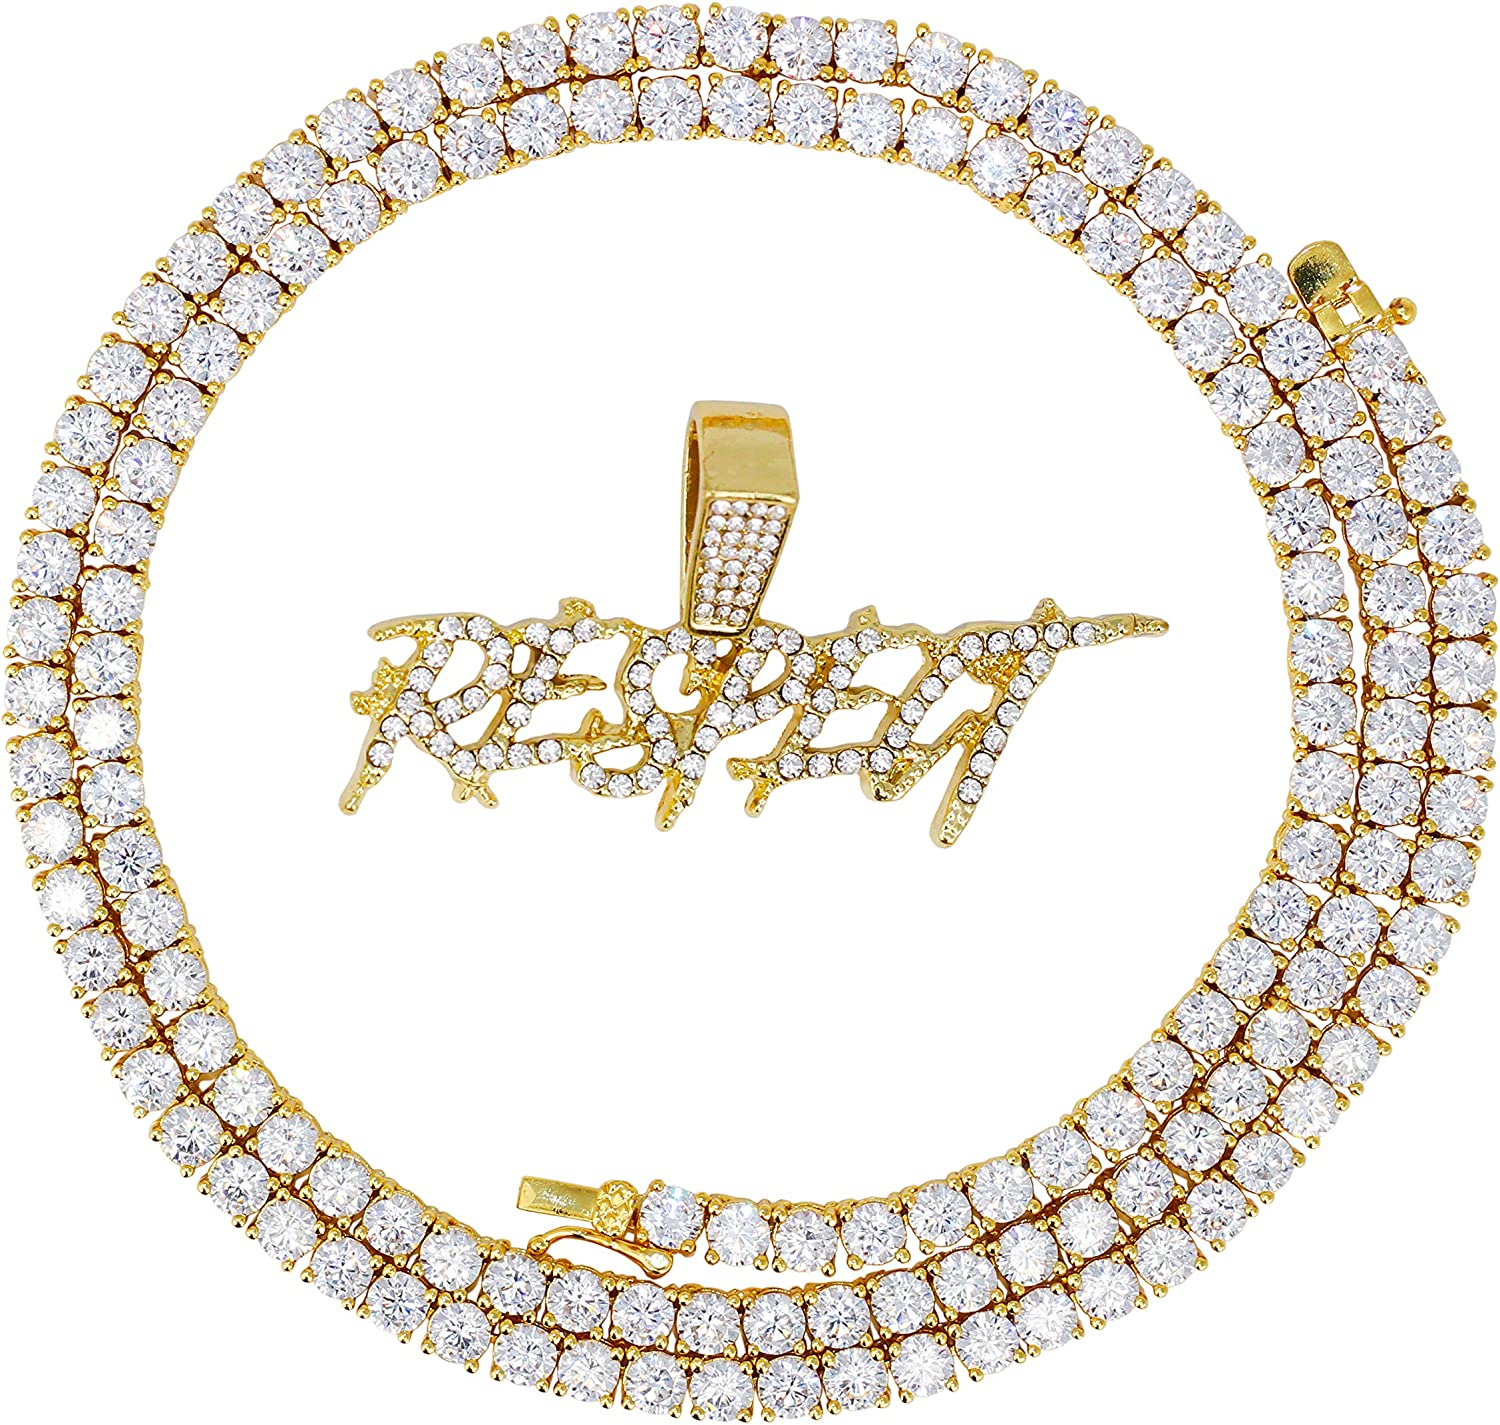 Techno Pave Iced Out Respect Pendant with Cz Crystals + Set of Two Chains - Includes 20